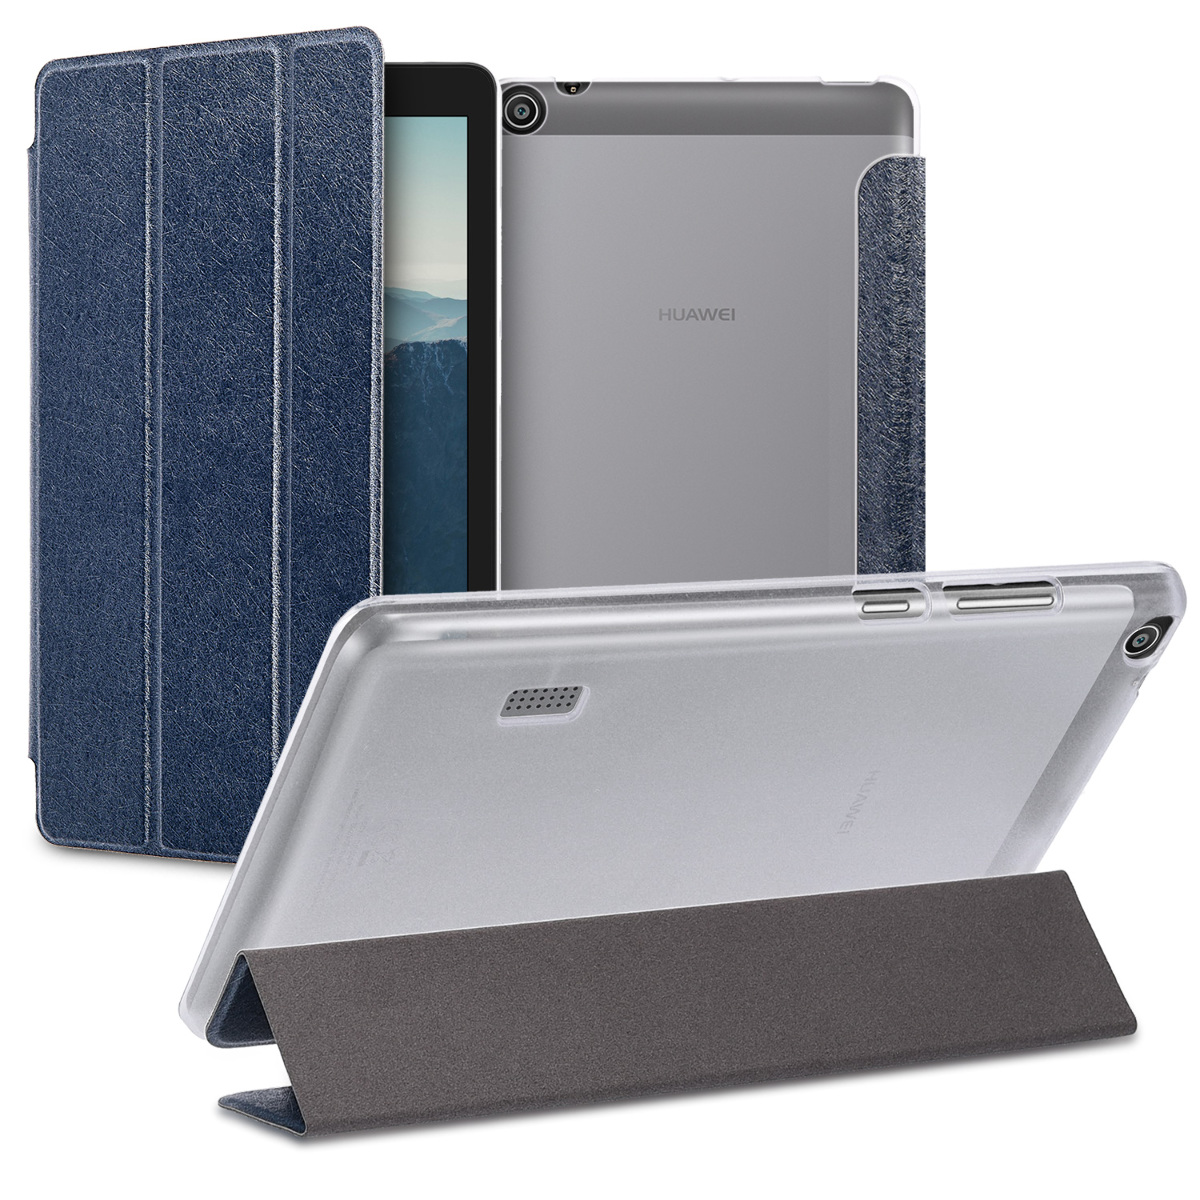 kwmobile-ELEGANT-ETUI-CUIR-POUR-HUAWEI-MEDIAPAD-T3-7-0-SUPPORT-HOUSSE-PROTEGE